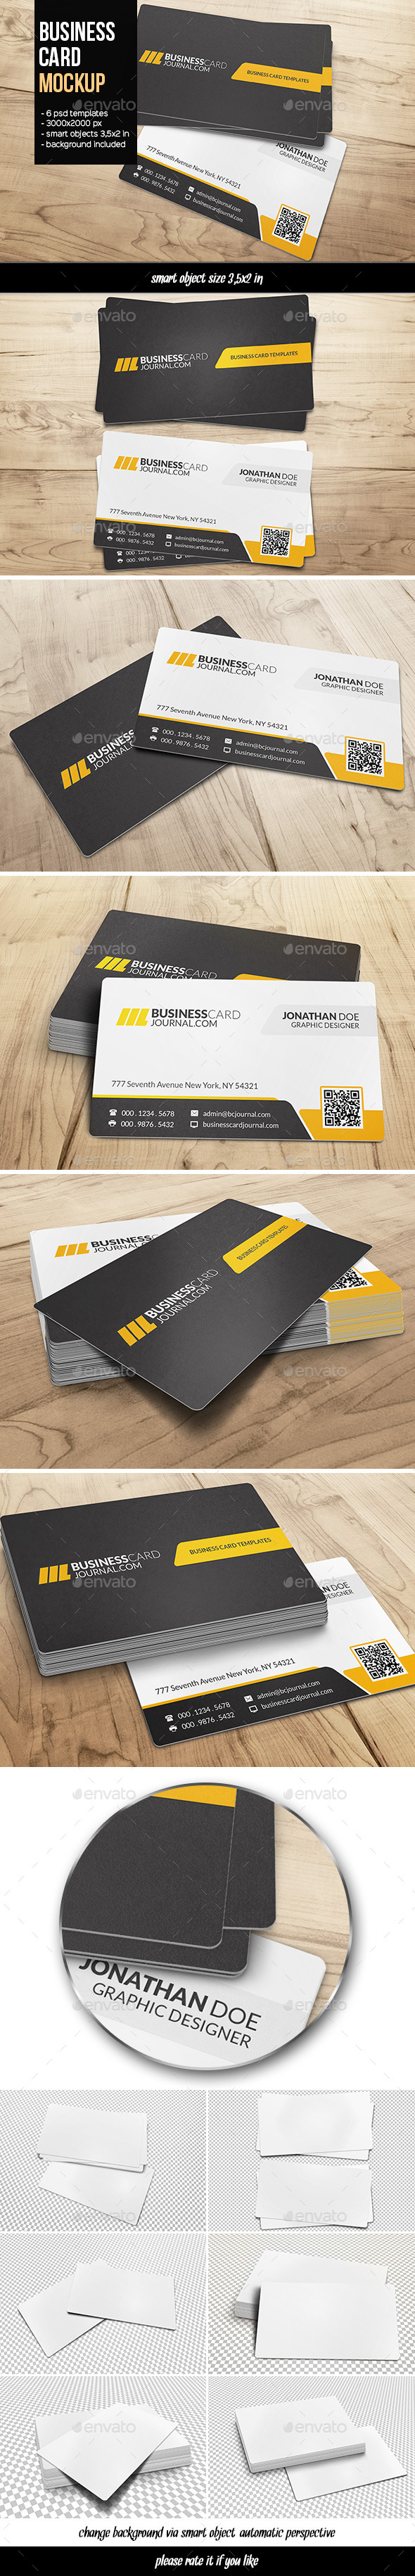 GraphicRiver Business Card Mockup 10787480